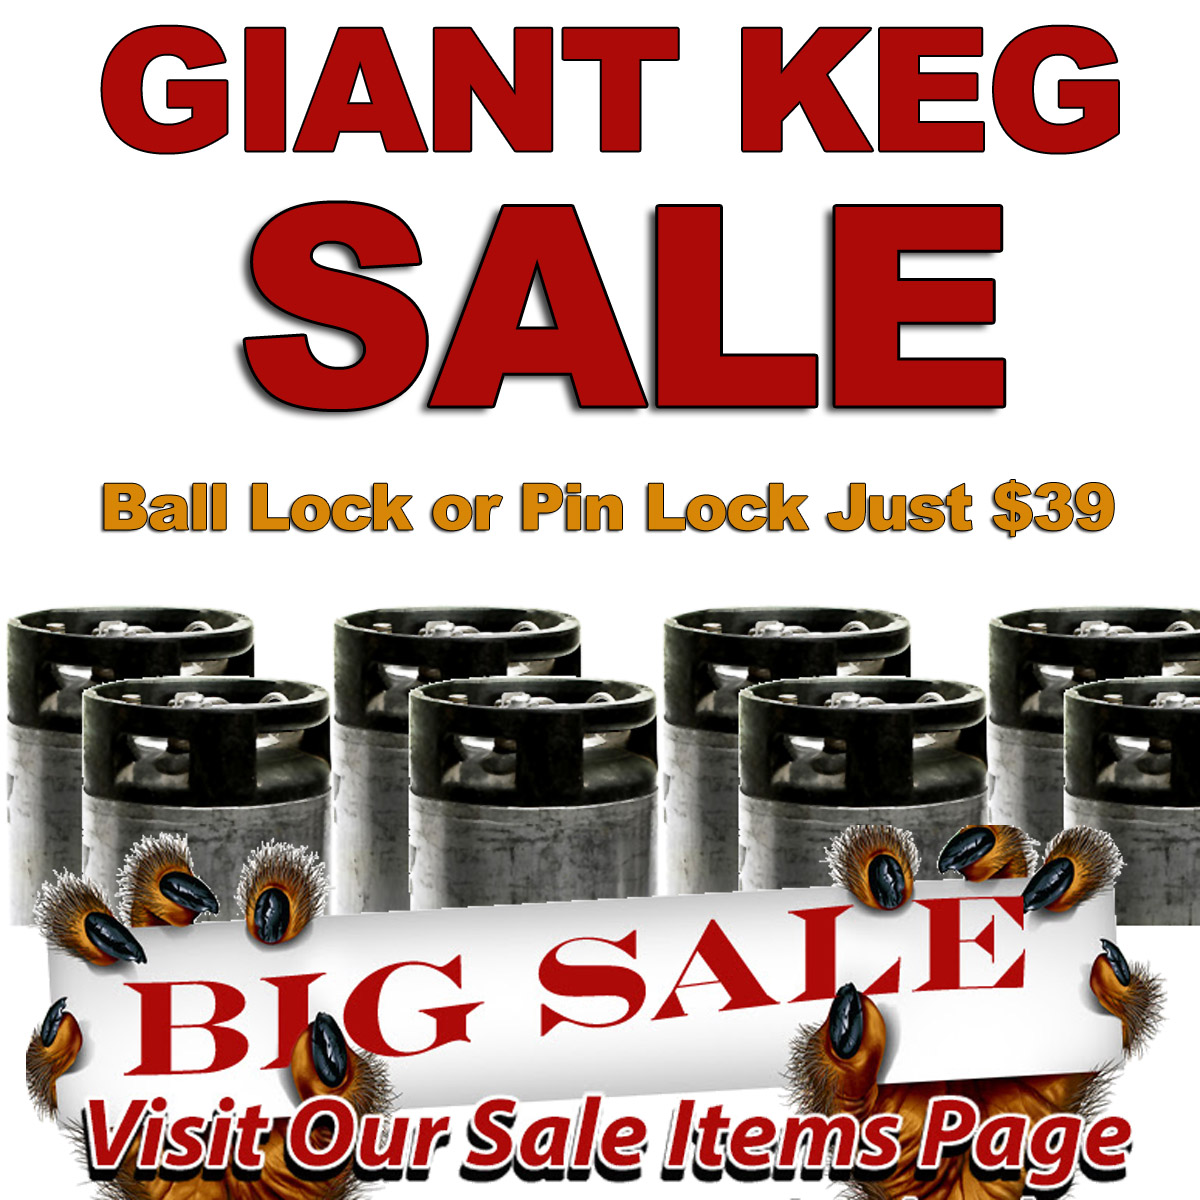 Homebrew Sale for Just $39 for a Ball Lock or Pin Lock Homebrewing Keg Sale